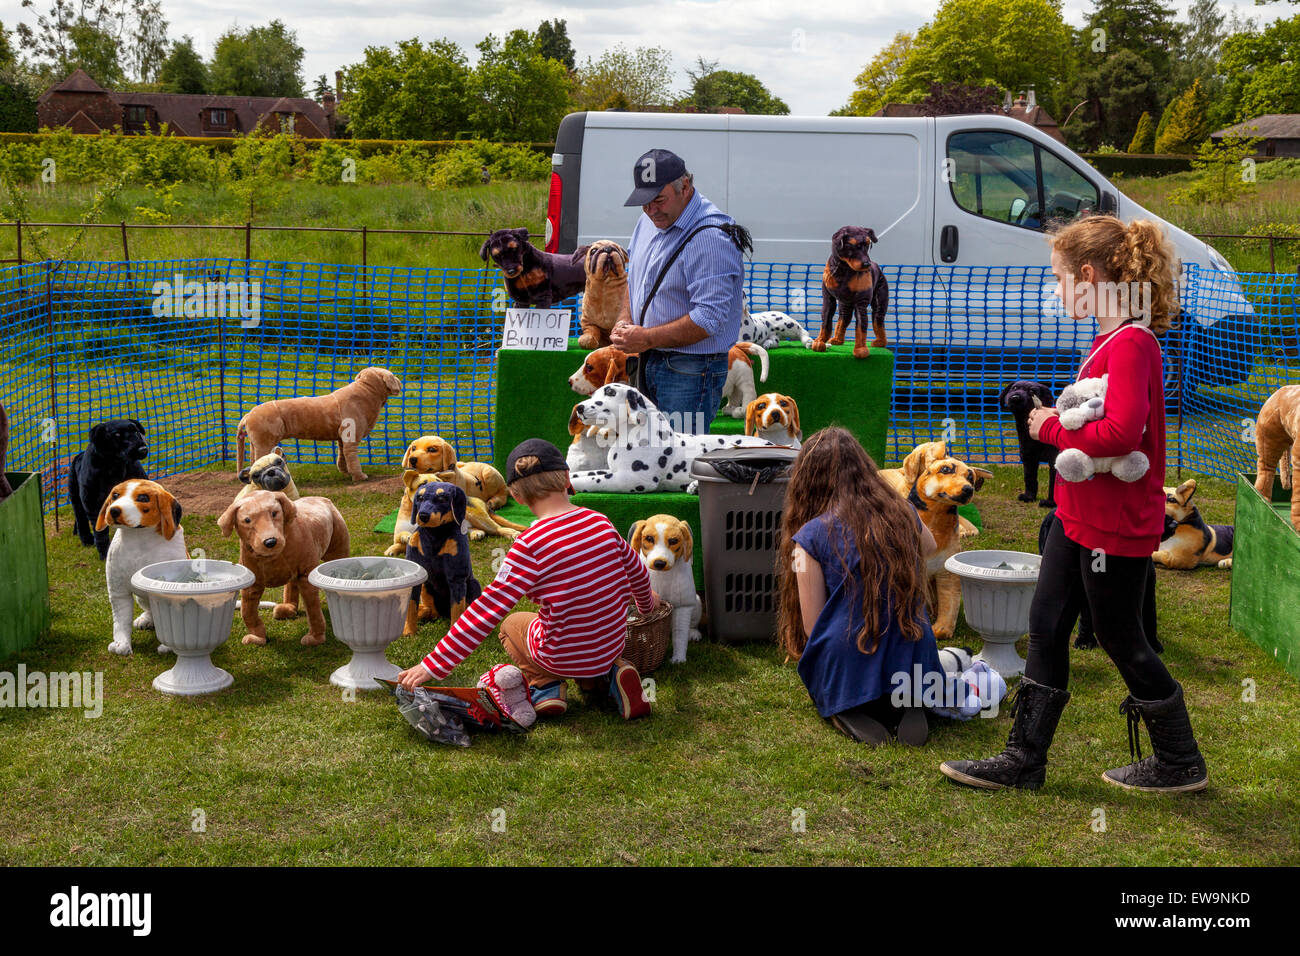 A Man Selling Toy Dogs, Maresfield Fete, Maresfield, Sussex, UK - Stock Image